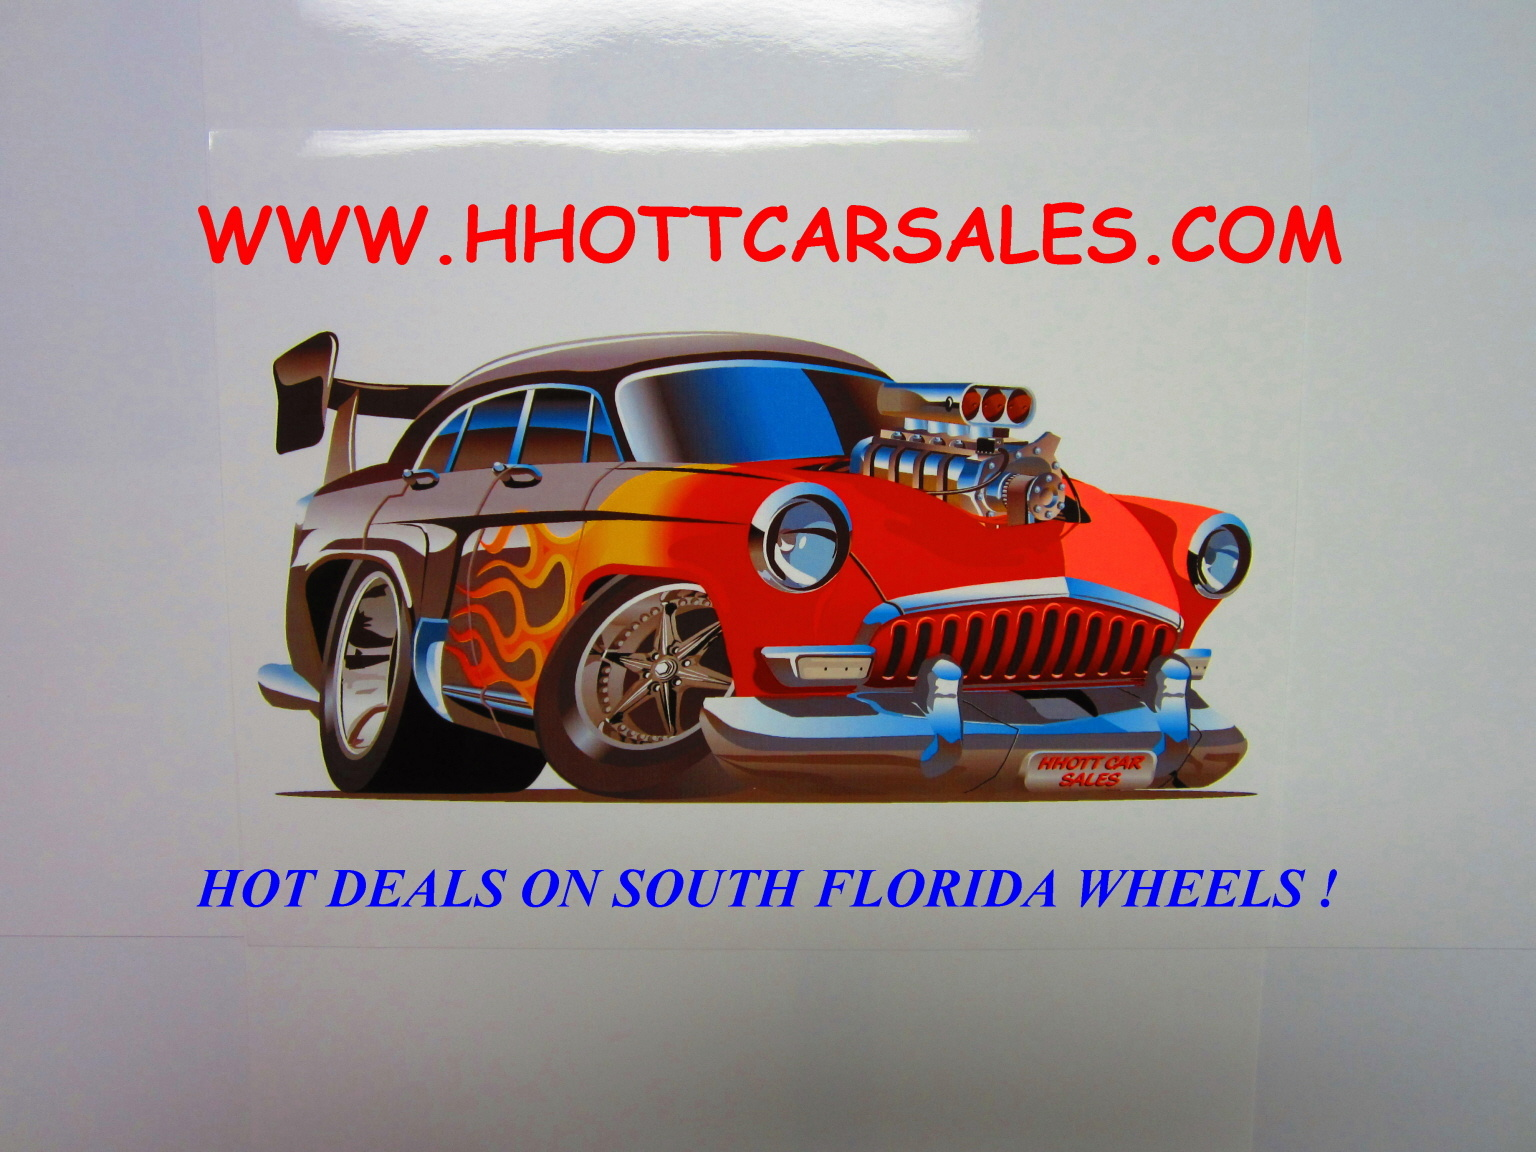 HHott Car Sales - Pompano Beach, FL: Read Consumer reviews, Browse ...